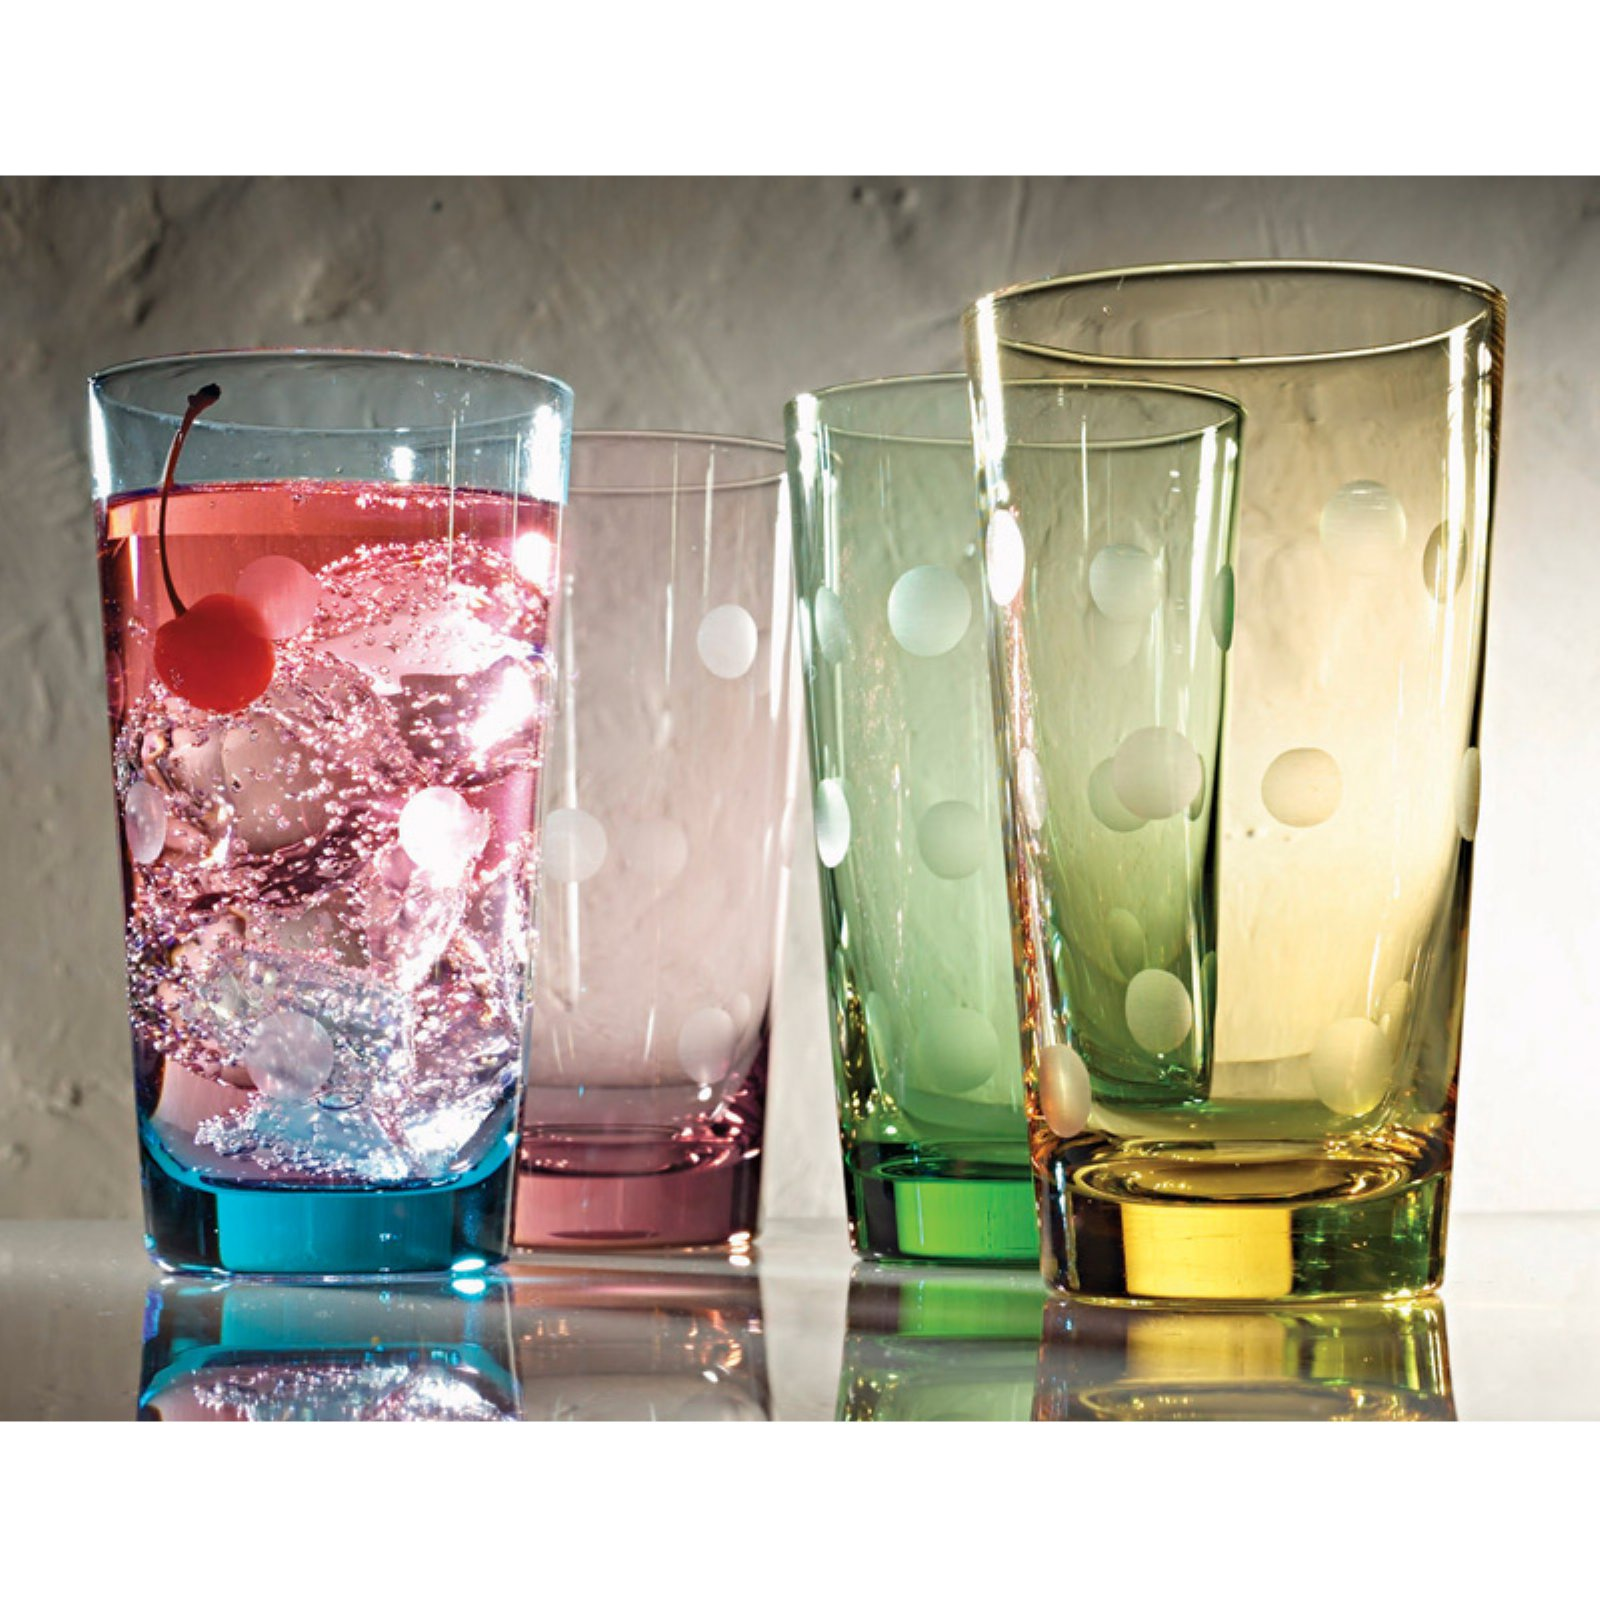 Artland Inc. Polka Dot 20 oz. HiBall Glasses - Set of 4